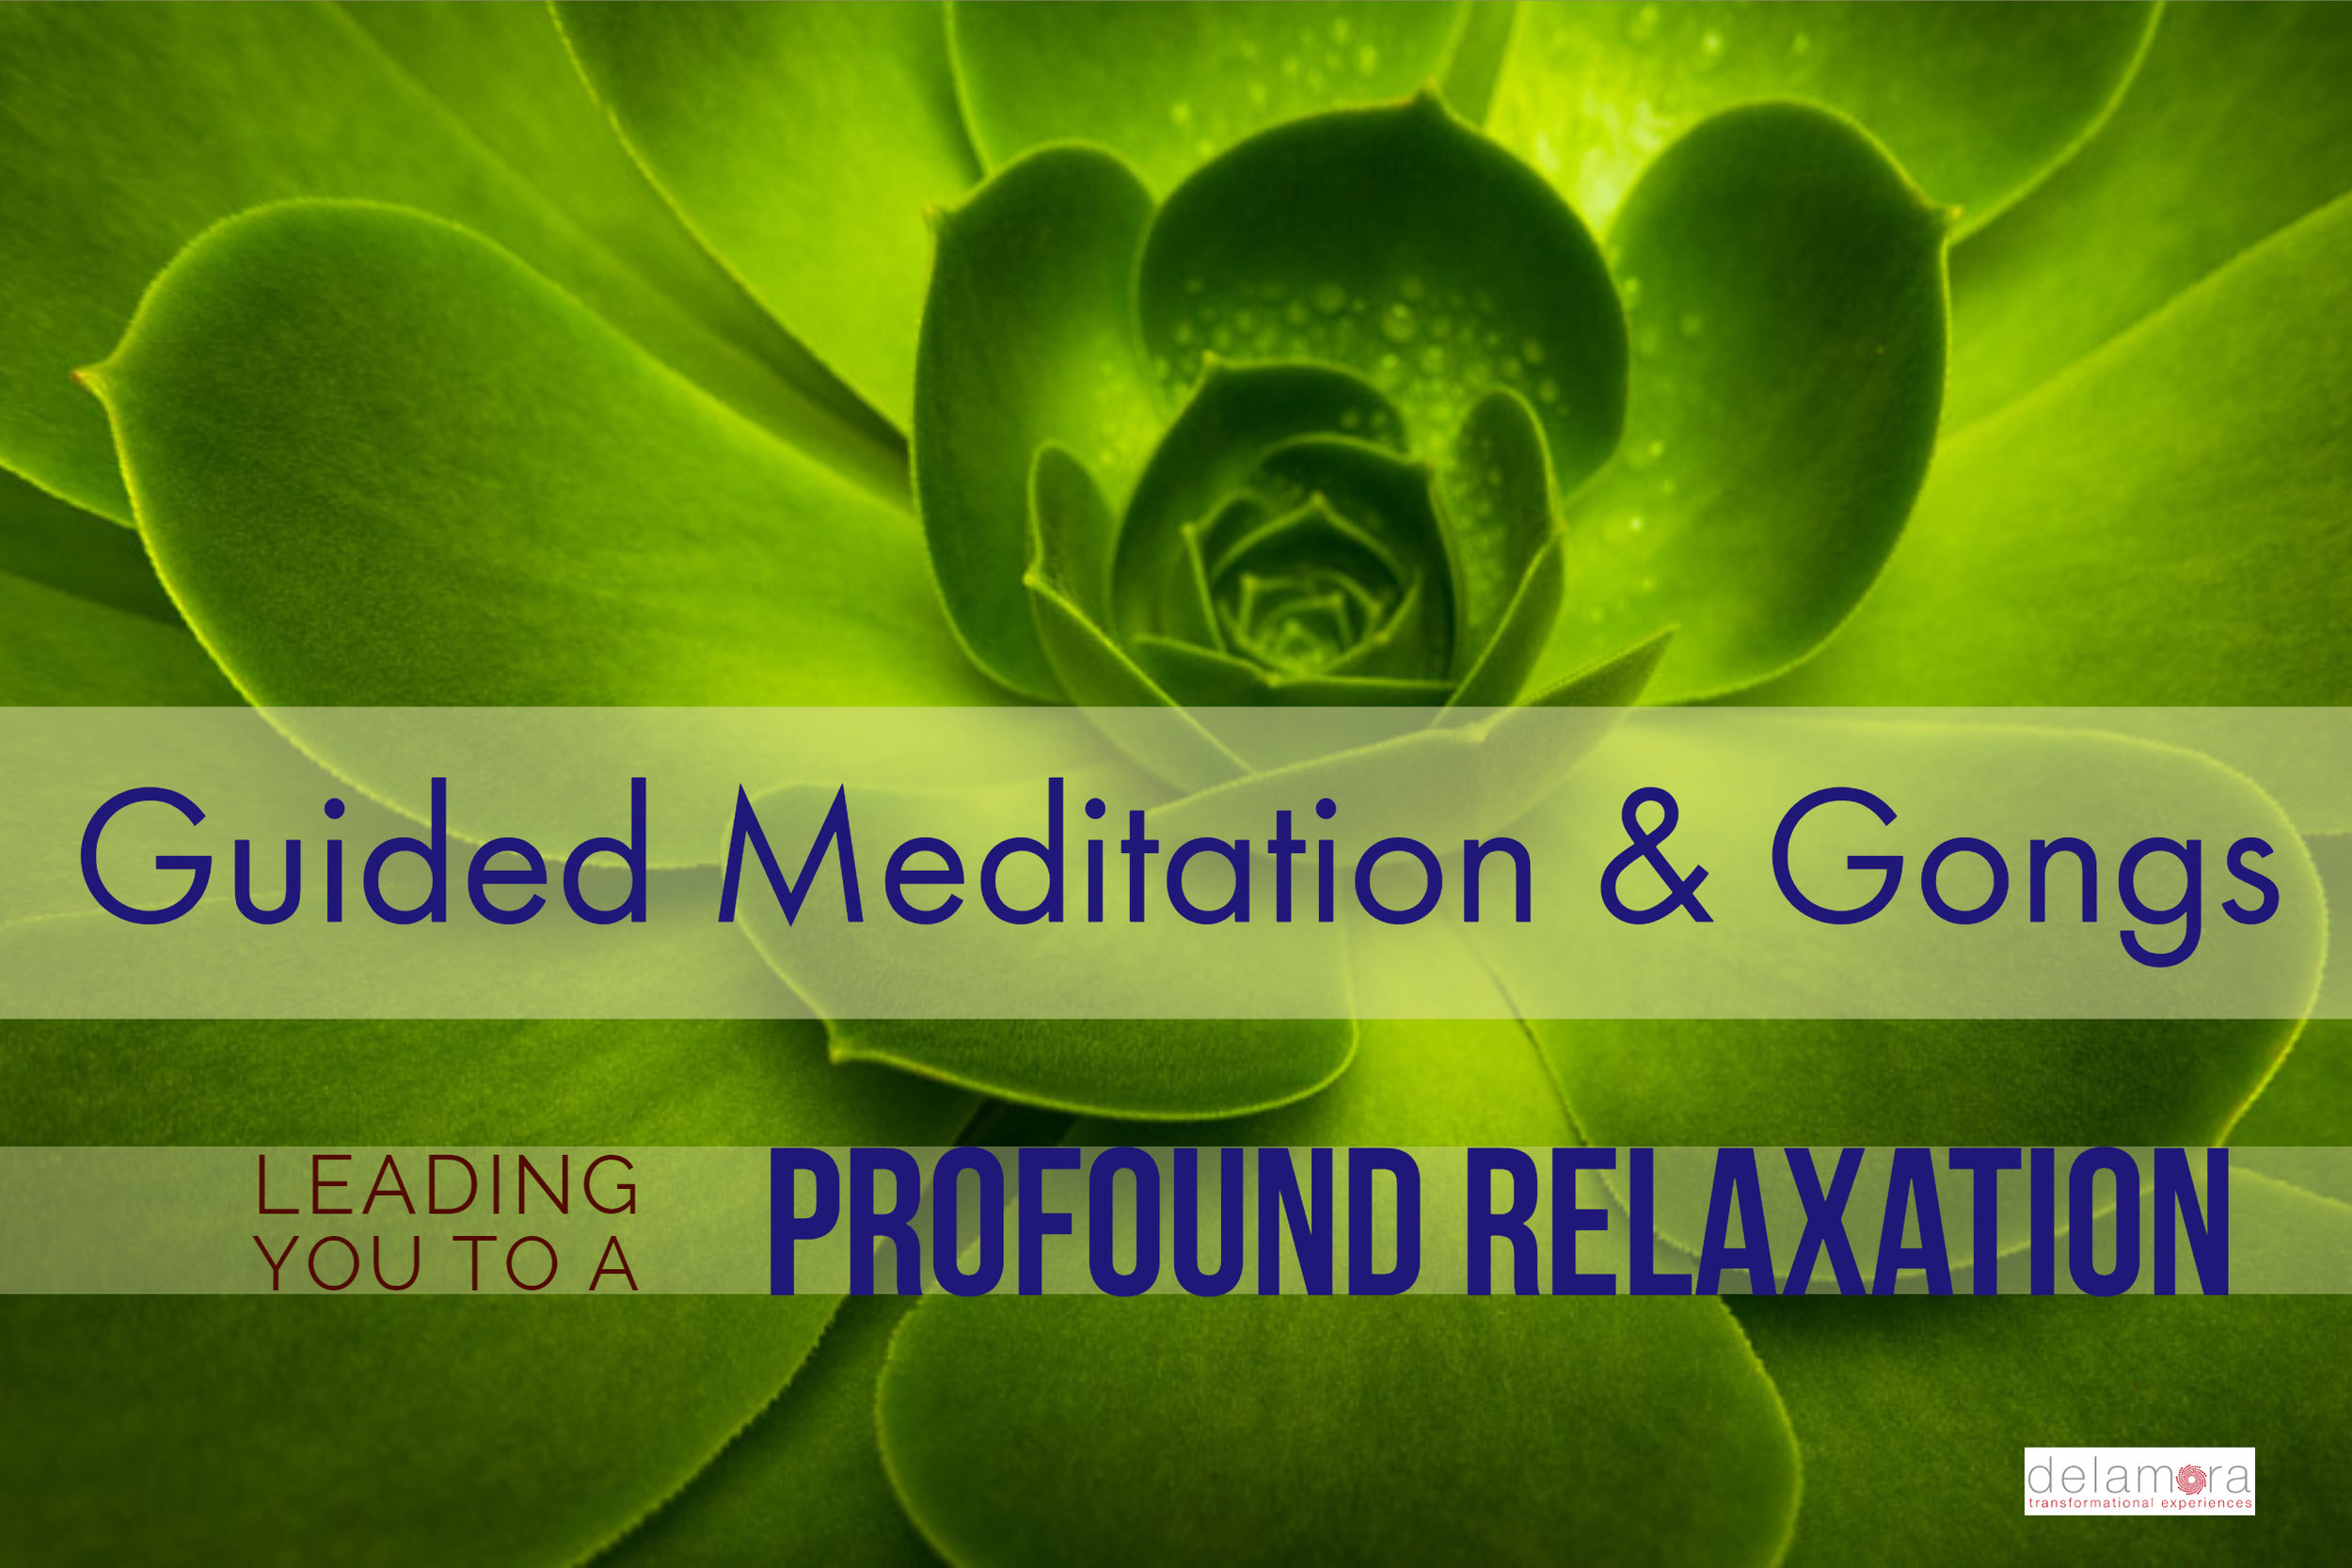 Deeply relax with a guided gong meditation at The Well in LaGrange